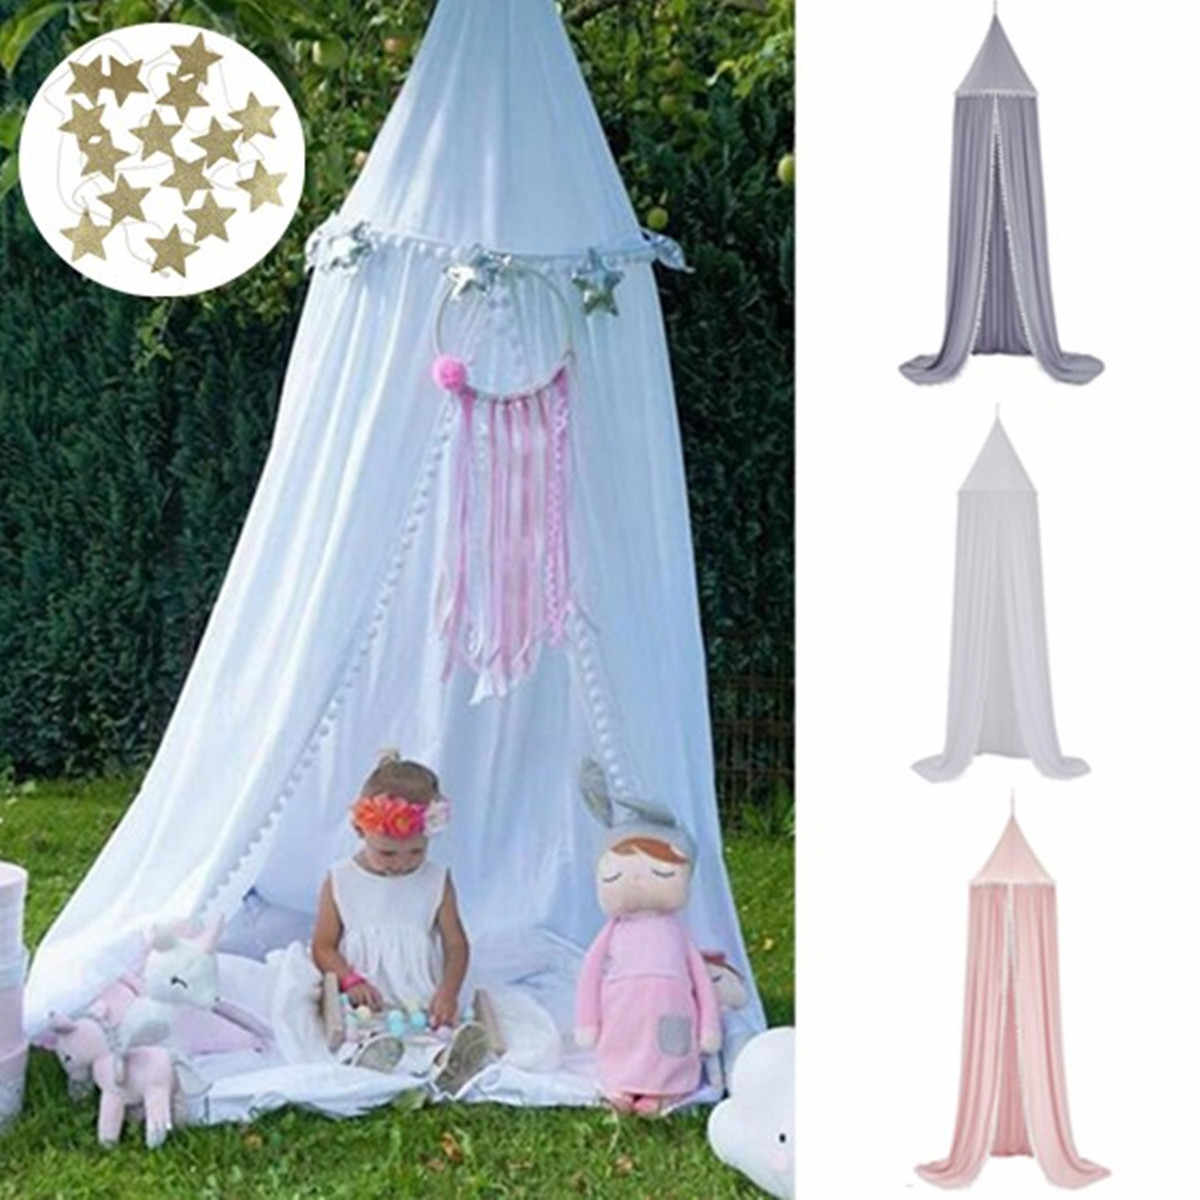 Hanging Mosquito Net Baby Bed Canopy Dome Dream Curtain Tent Baby Crib Netting Round Hung Kids Canopy Tent Children Room Decor